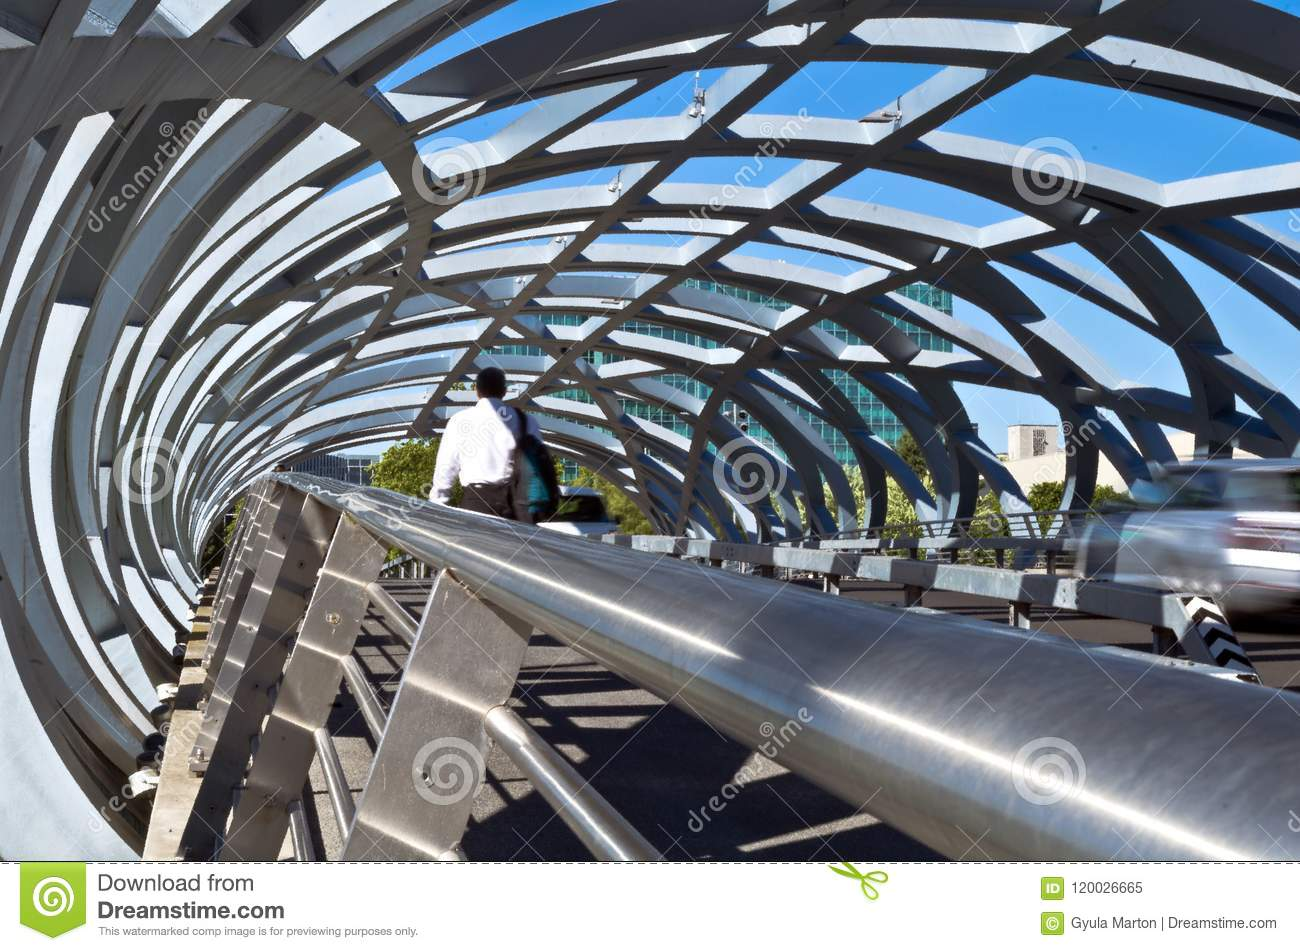 Pedestrian and car passed over to the other side of the open canopy Rolex bridge in Geneva. large open decorative steel cover link overpass connection ... & Walking open canopy bridge editorial image. Image of bridge - 120026665